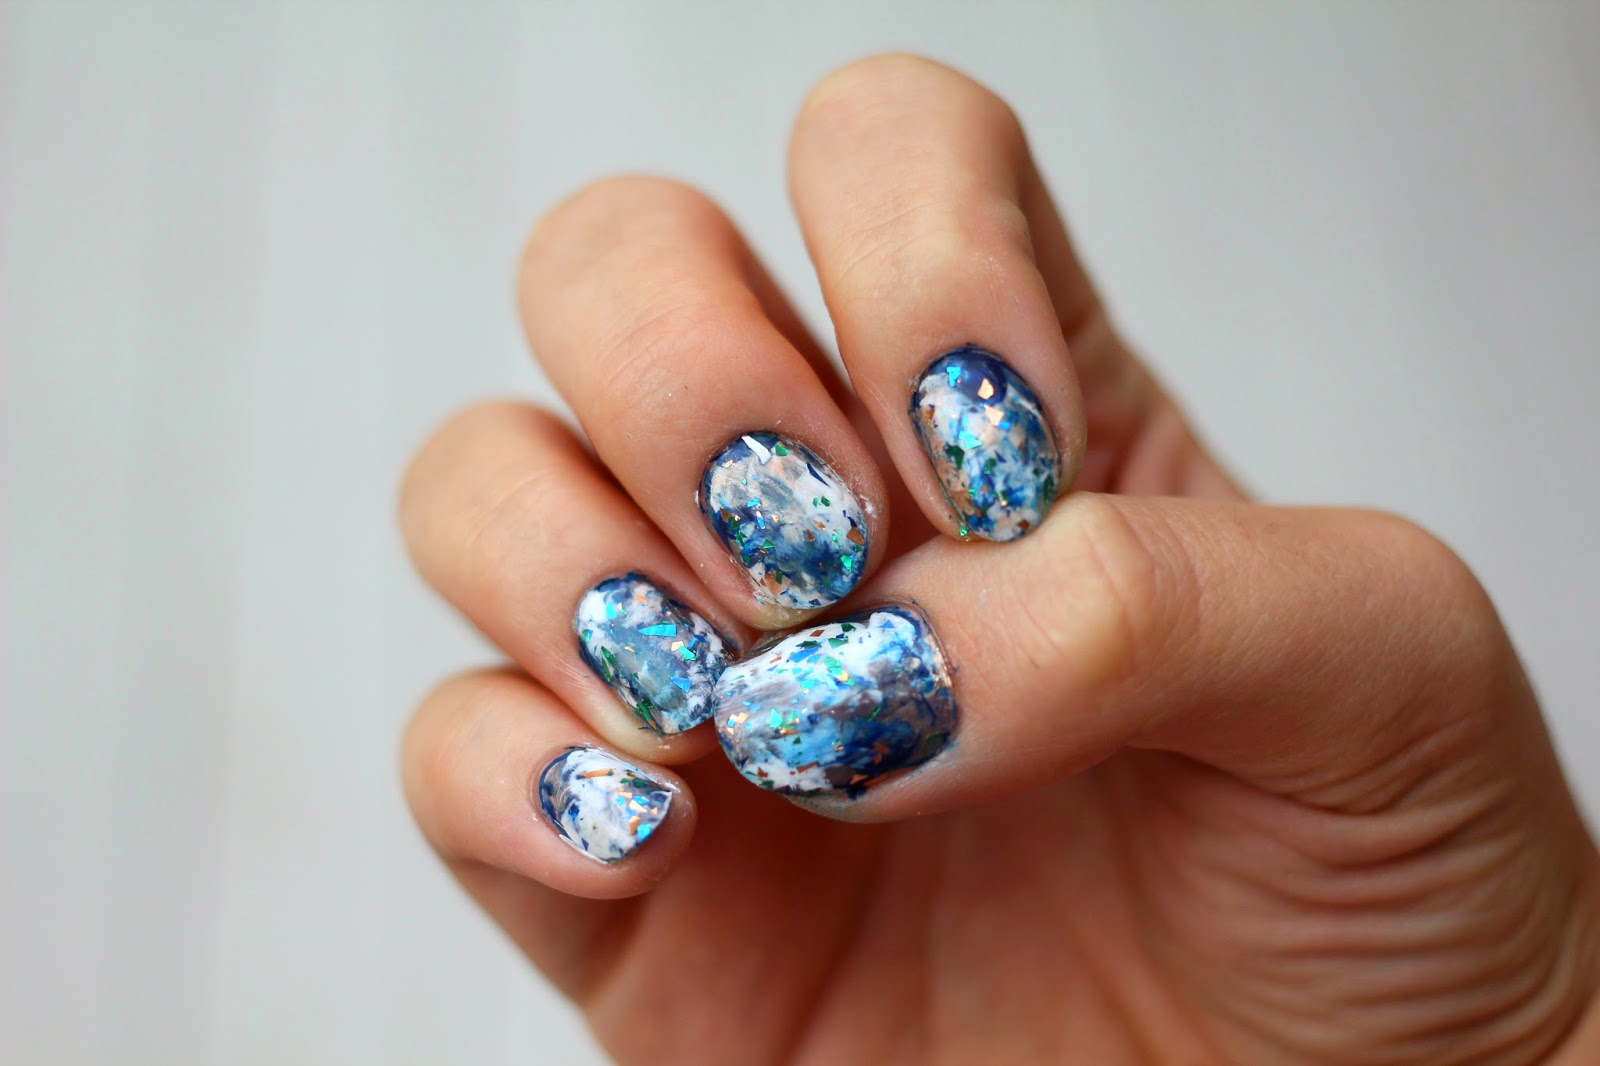 Sally Hansen, The royals collection by Sally Hansen, marble nails, review, nail polishes, nail art, Family jewel nail polish, Blue blood nail polish, Mind your manors nail polish,